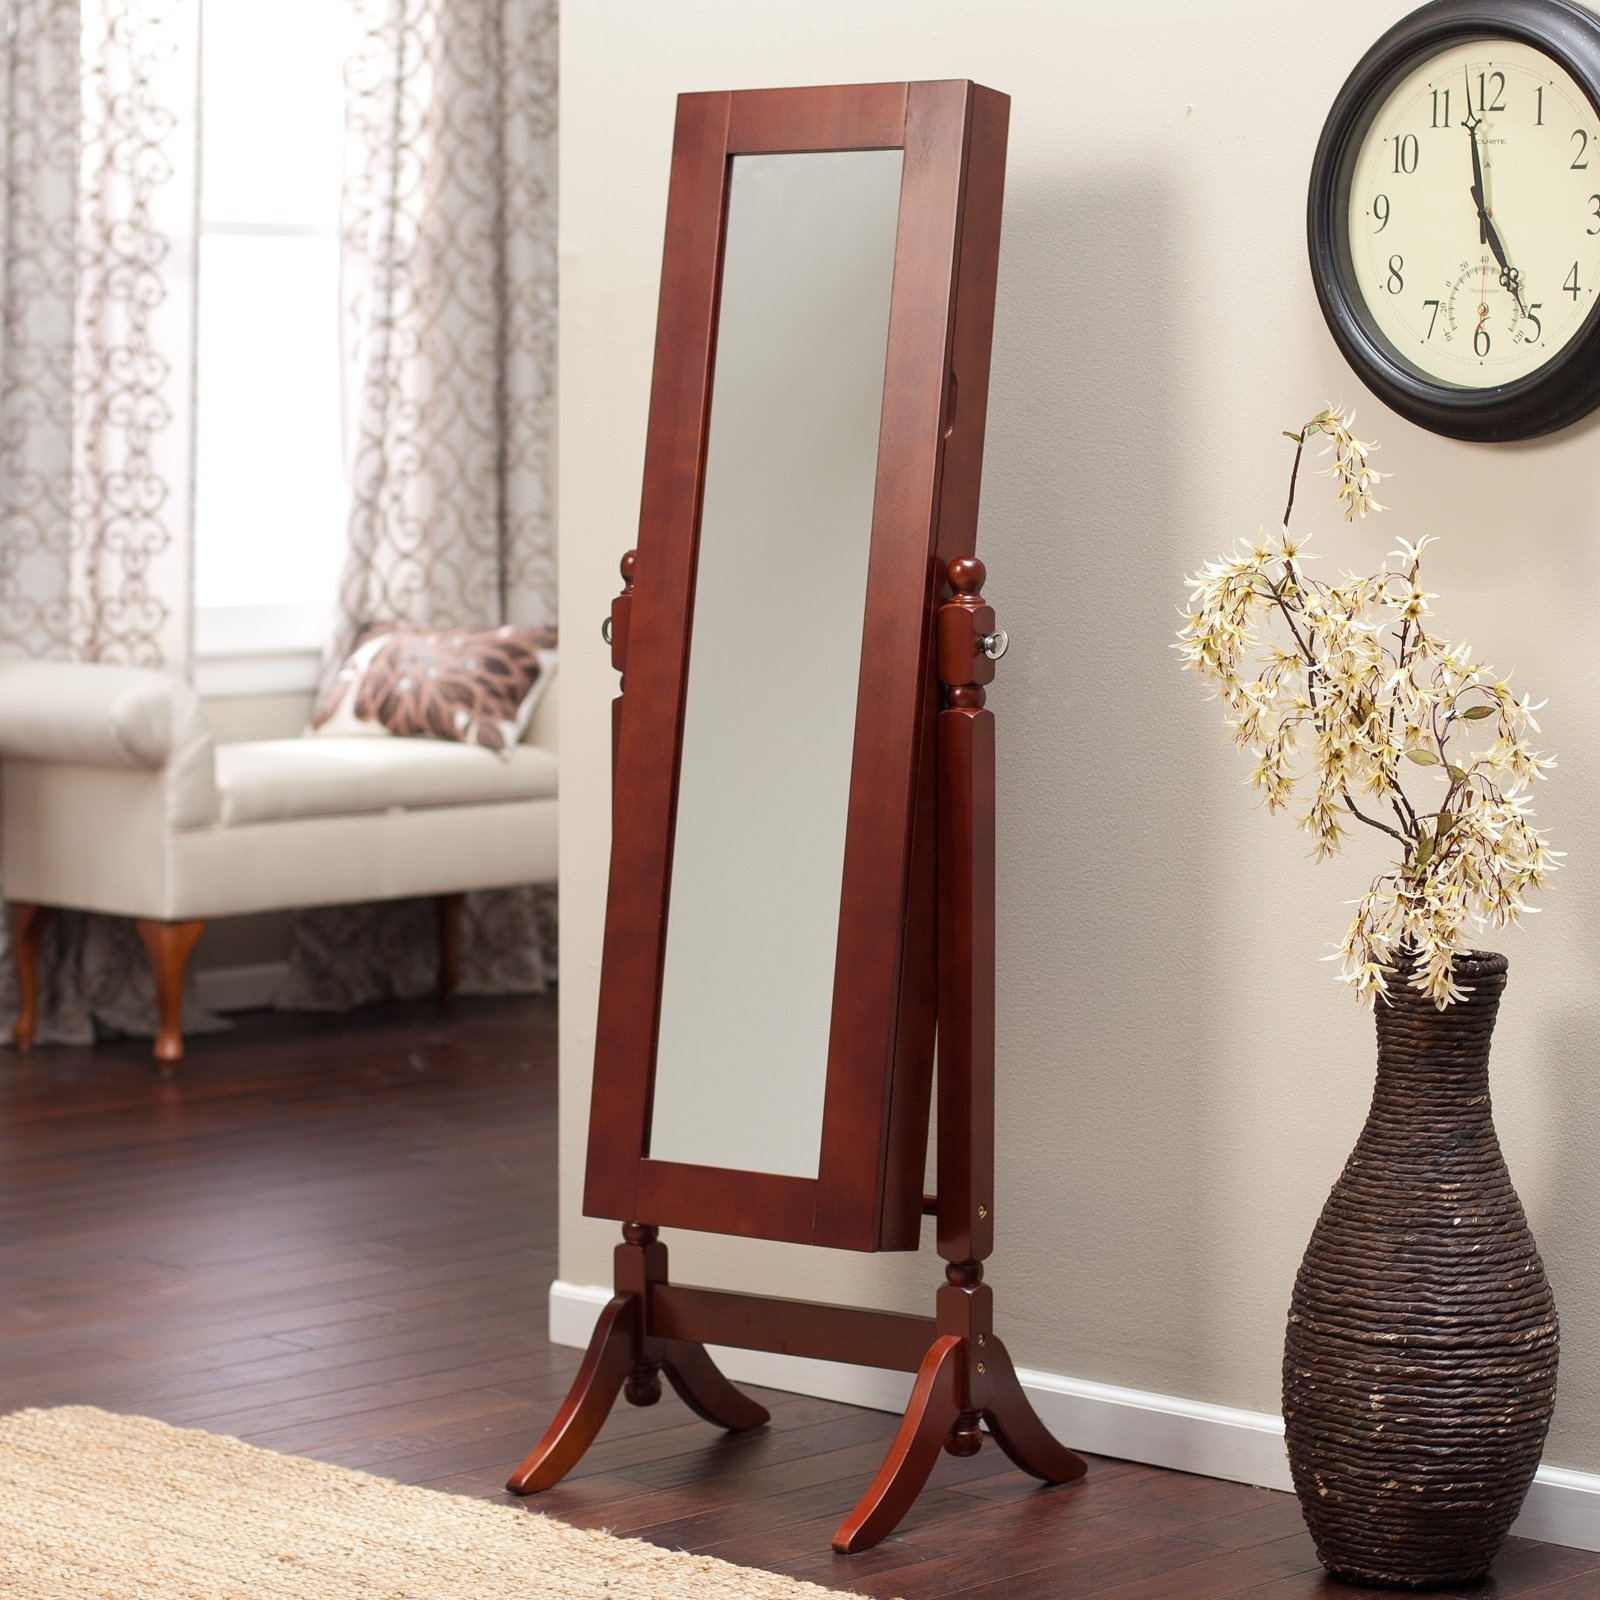 Bedroom Mirror Easel Diy Floor Mirror Stand Plans Full Body With Regard To Wrought Iron Floor Mirror (View 3 of 15)